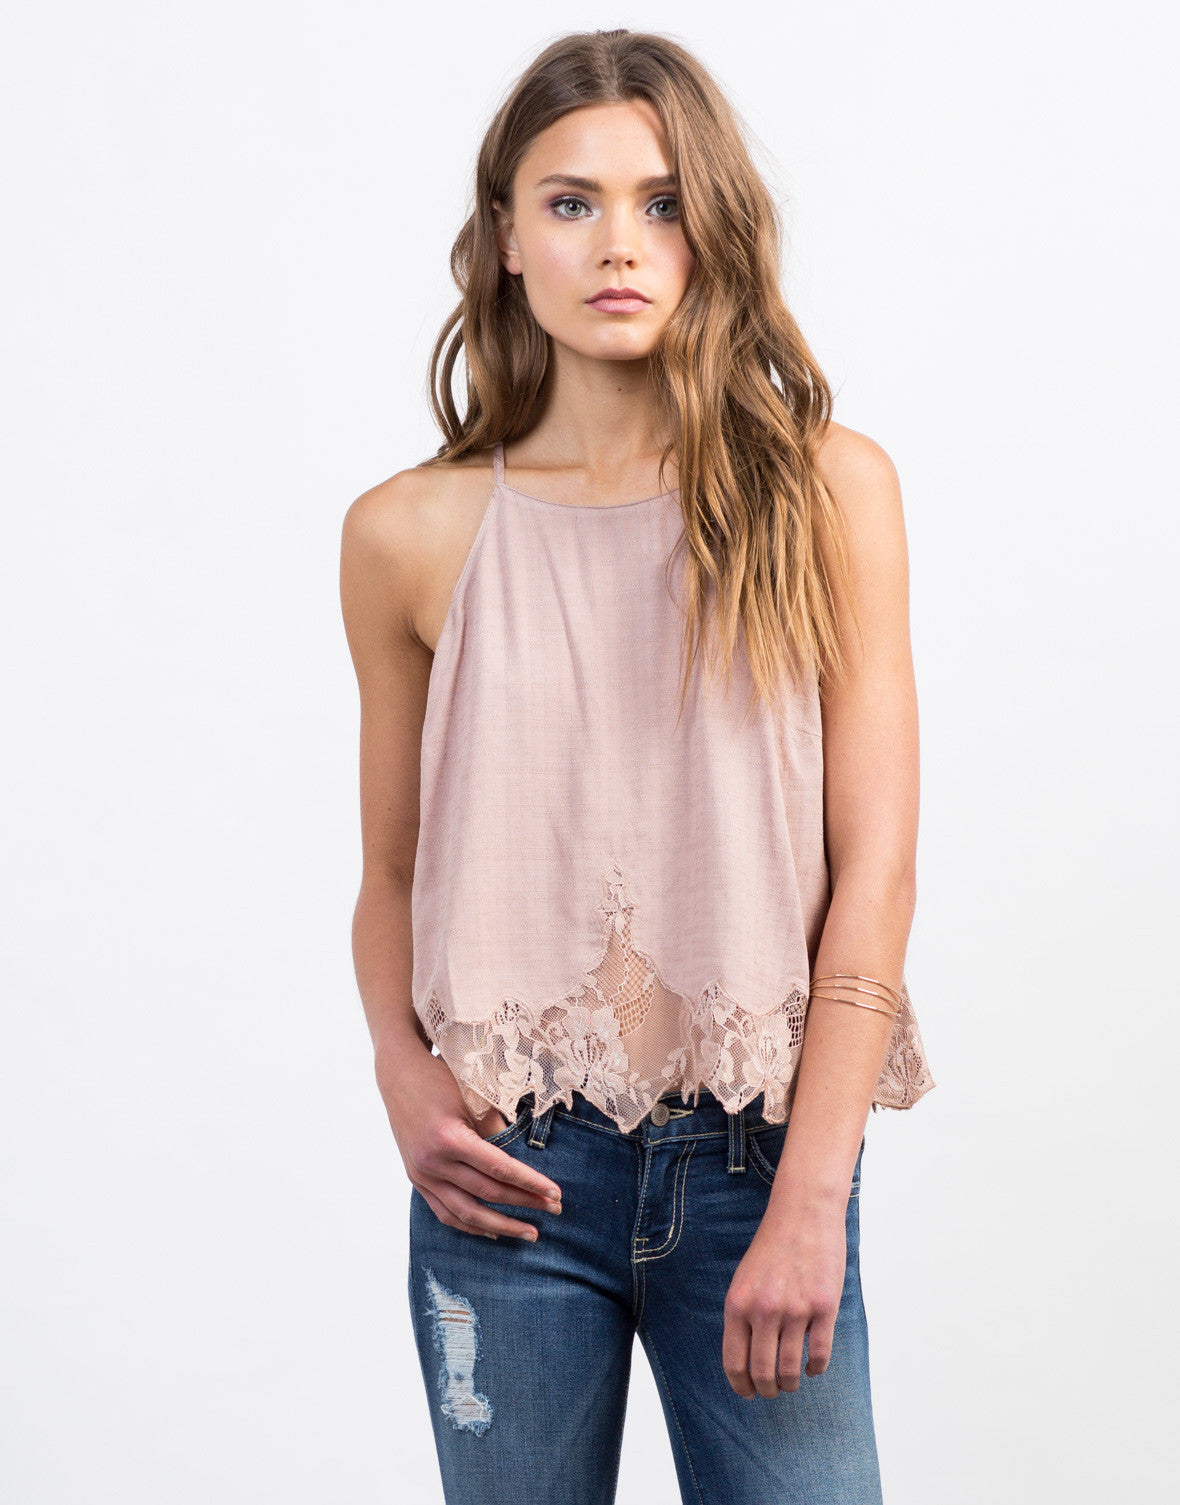 Front View of Stitched Lace Cami Top